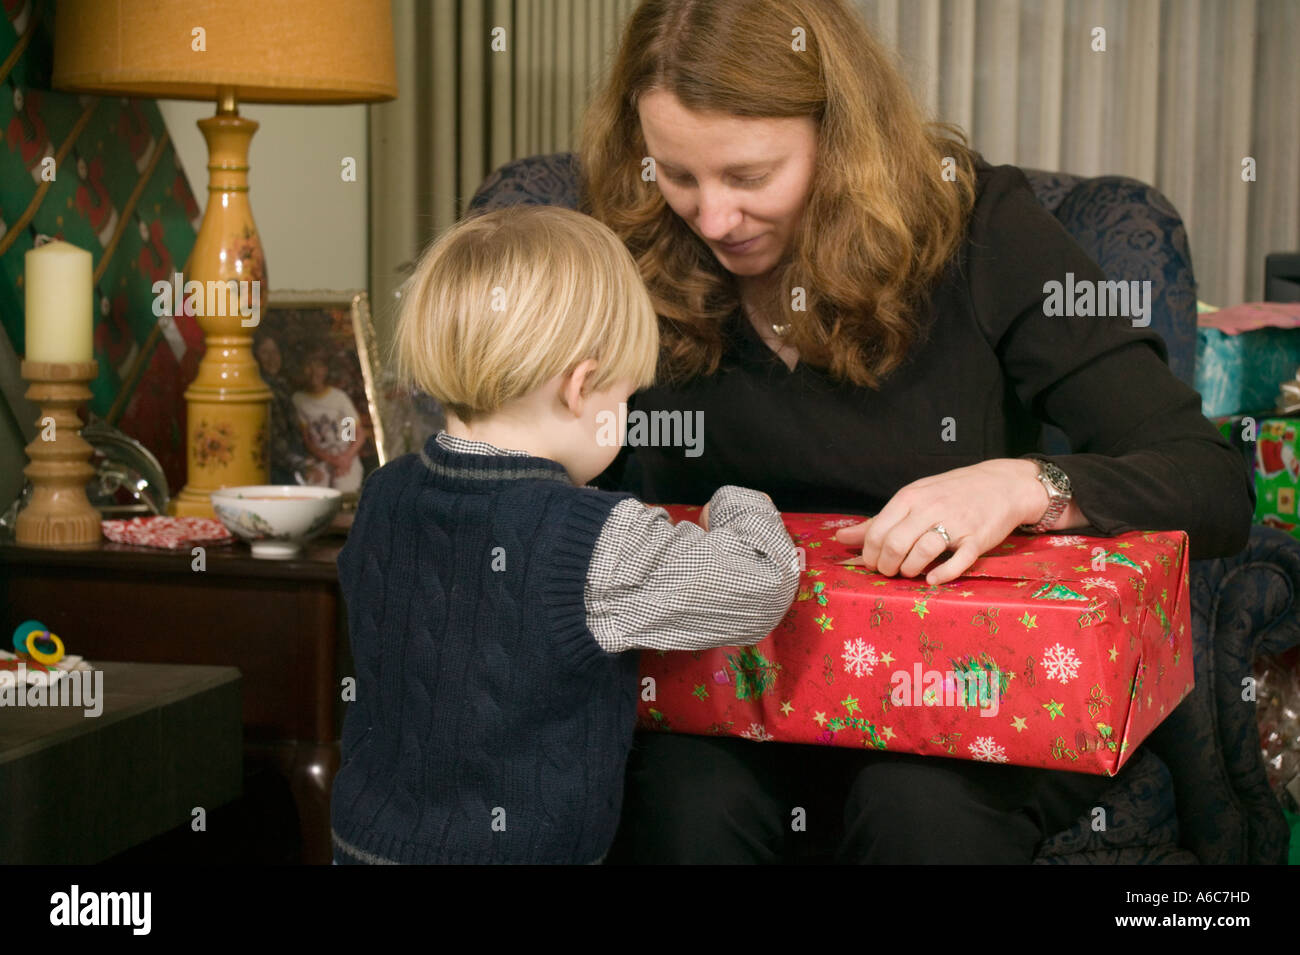 Christmas Gifts For Mom From Son.Mom And Son Opening Christmas Presents Stock Photo 6588764